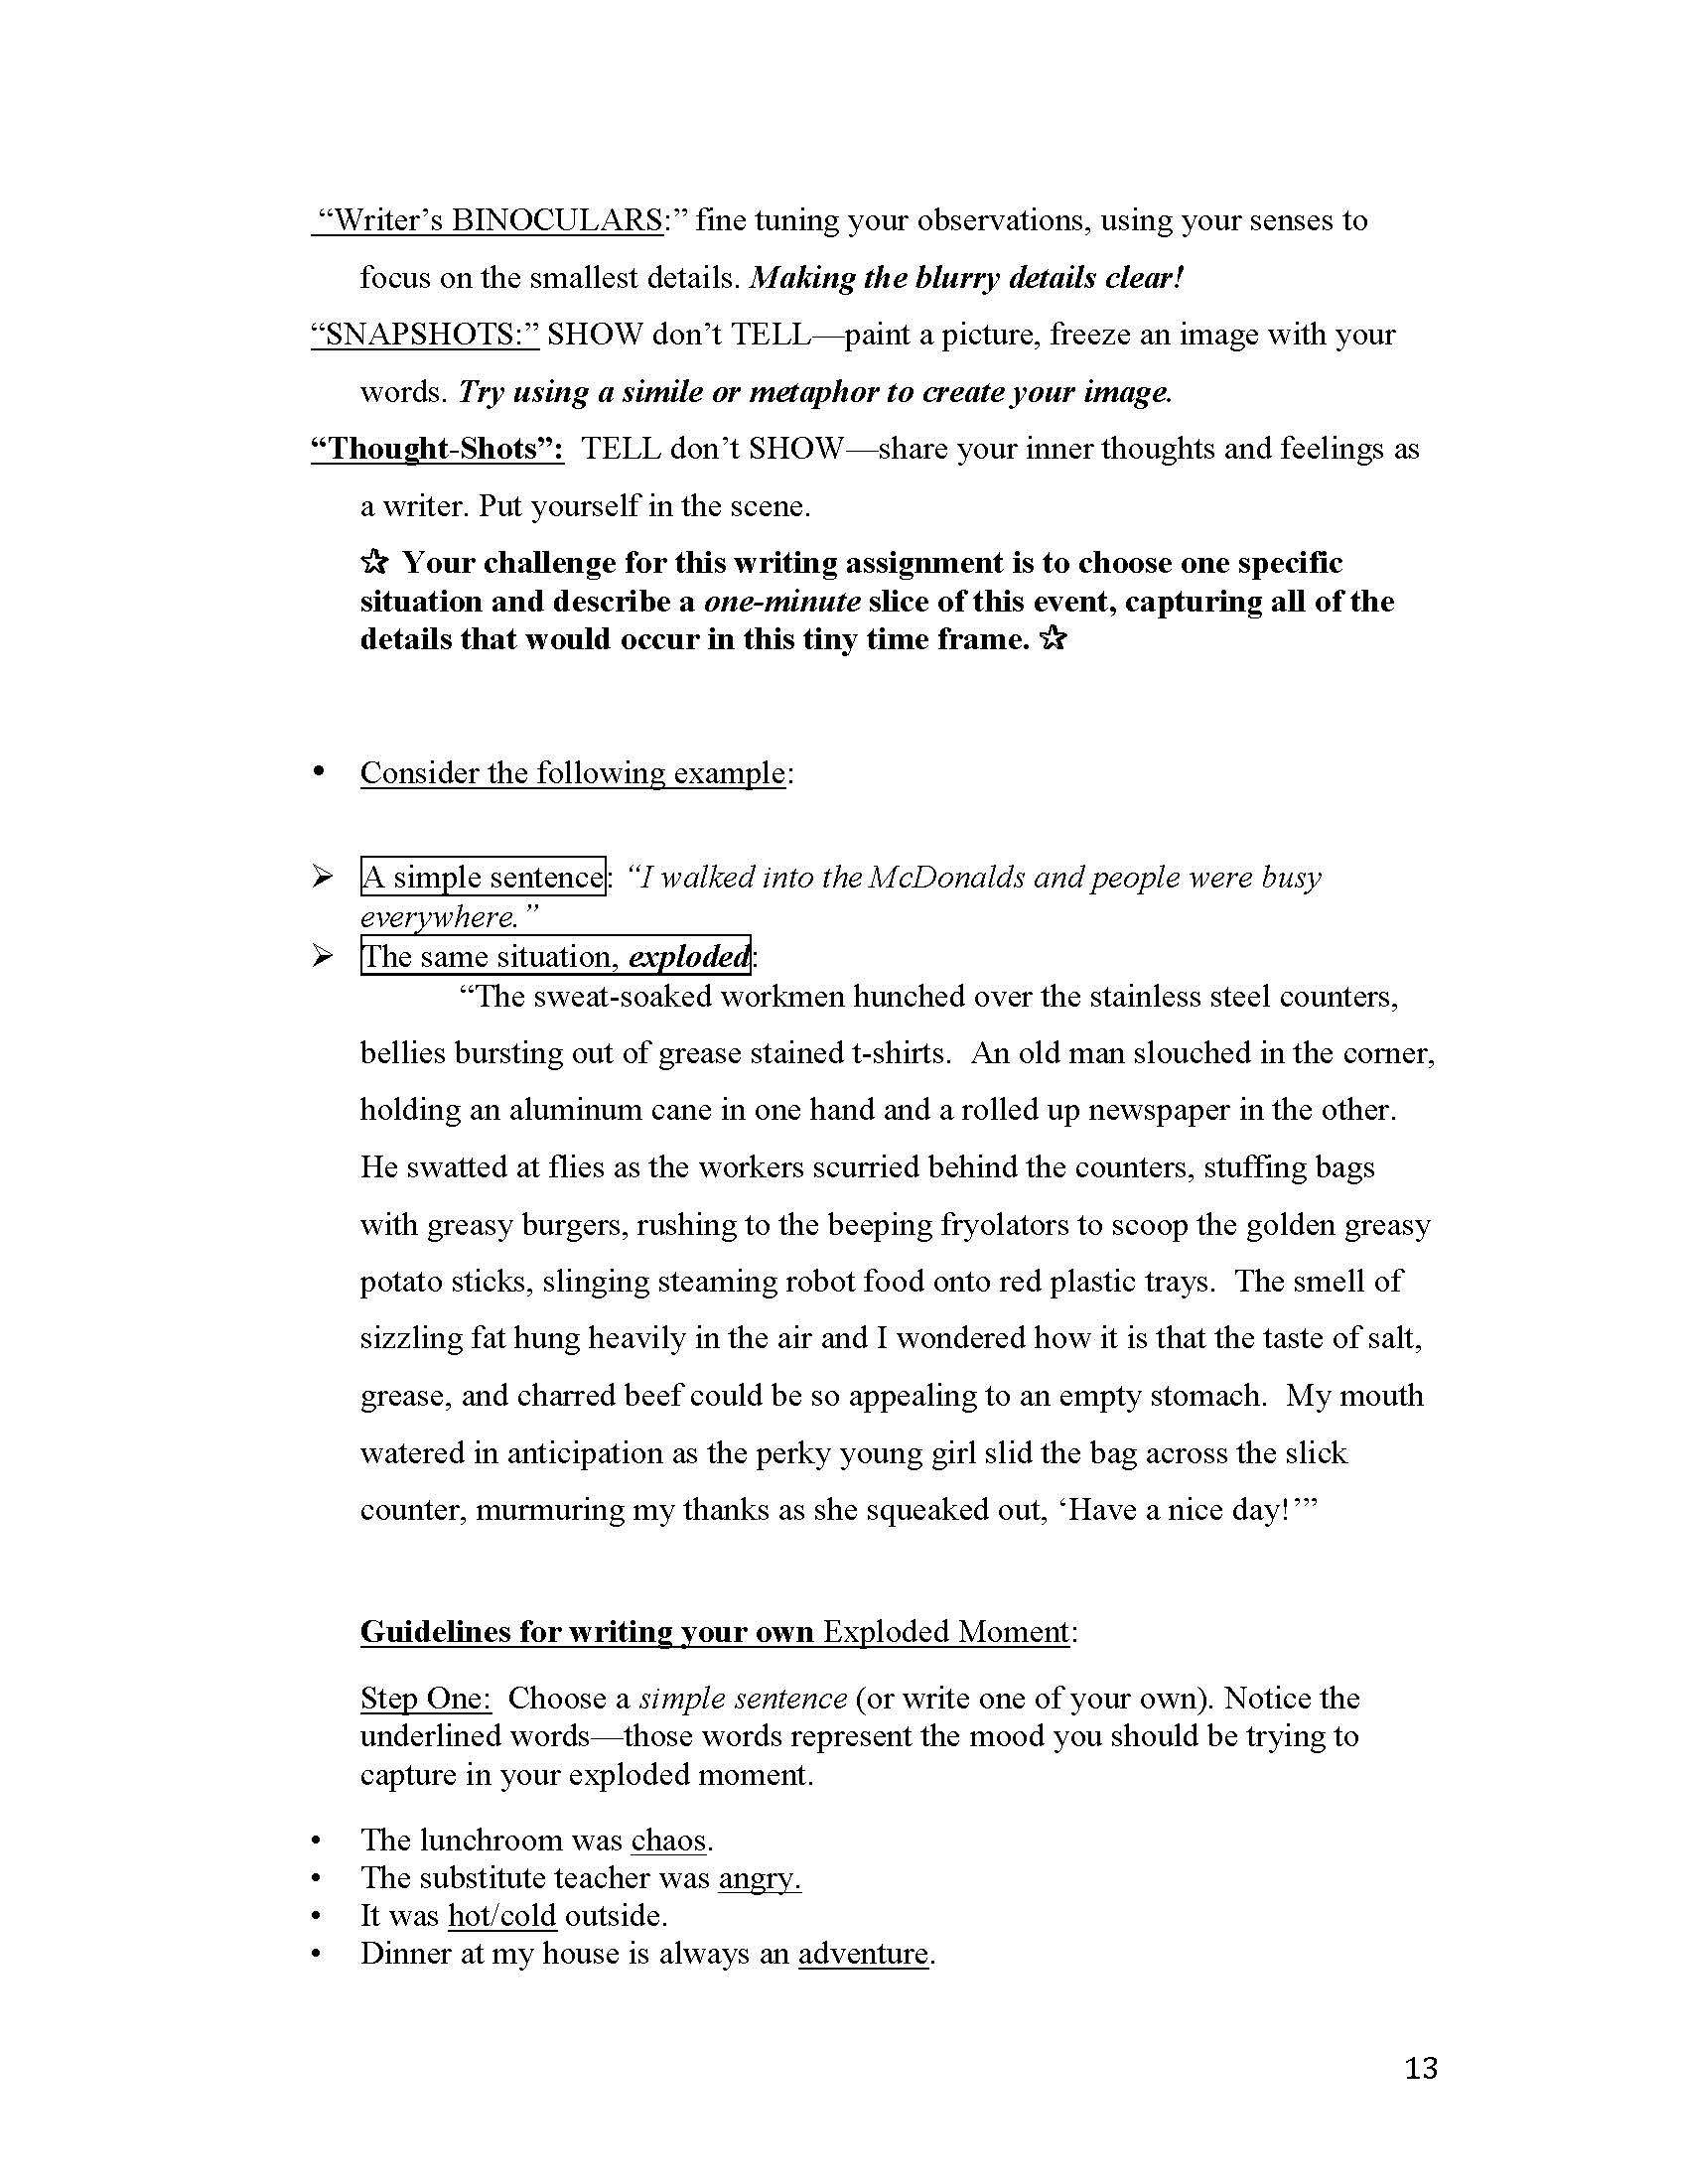 013 Essay Example Literacy Narrative Introduction Paragraph Of Service Good Examples Unit 1 Instructor Copy Pa Format How To Start Phenomenal Personal Sample Digital Full